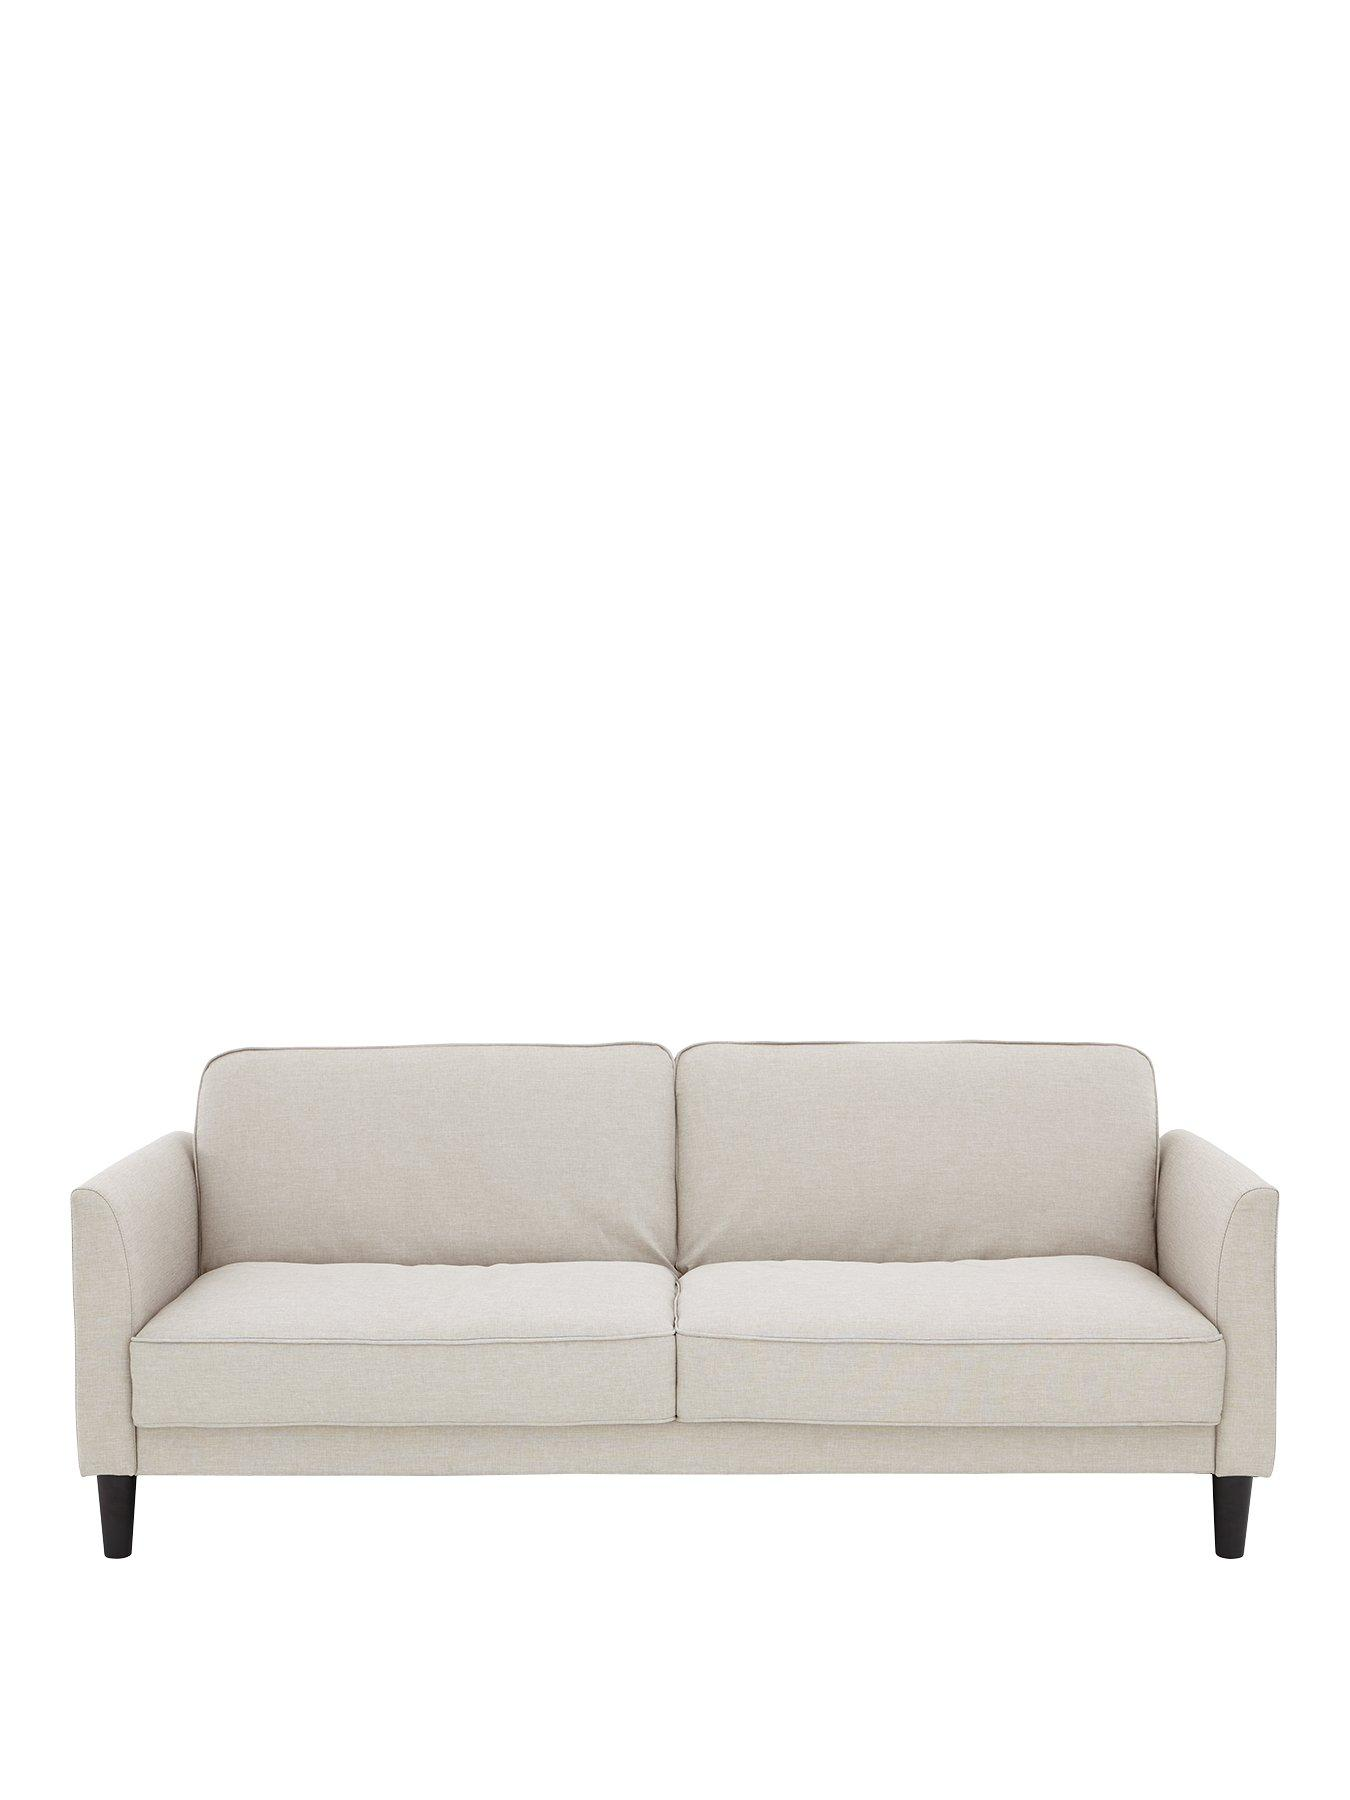 Swell Sofa Shops Derry Three Posts Derry Sofa Amp Reviews Wayfair Andrewgaddart Wooden Chair Designs For Living Room Andrewgaddartcom